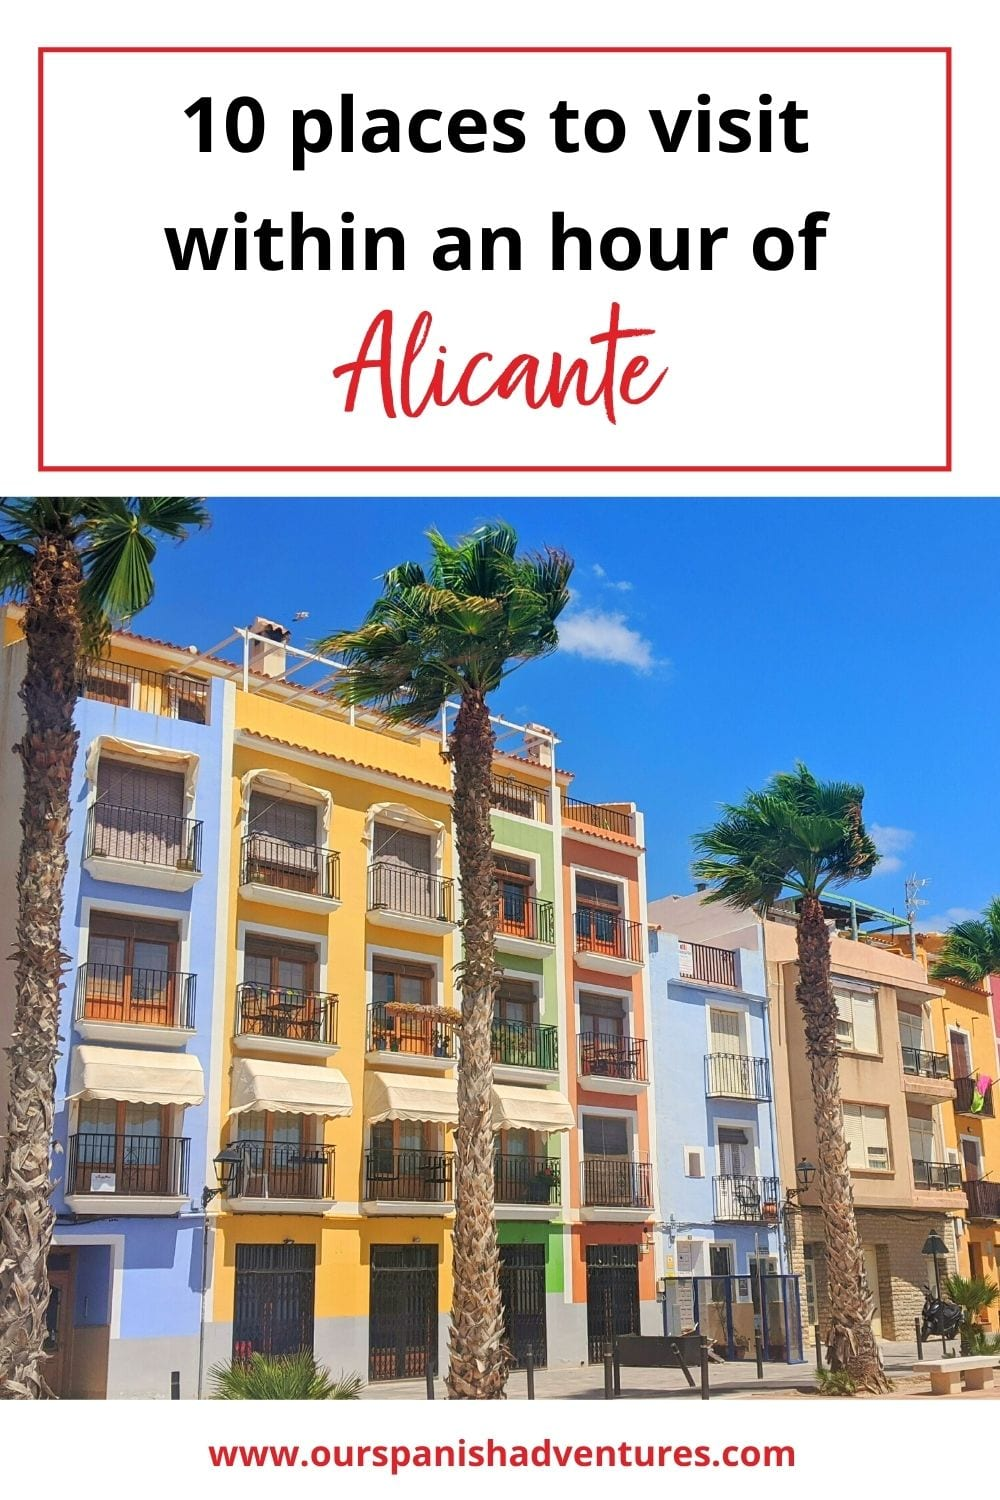 10 places to visit within an hour of Alicante | Our Spanish Adventures